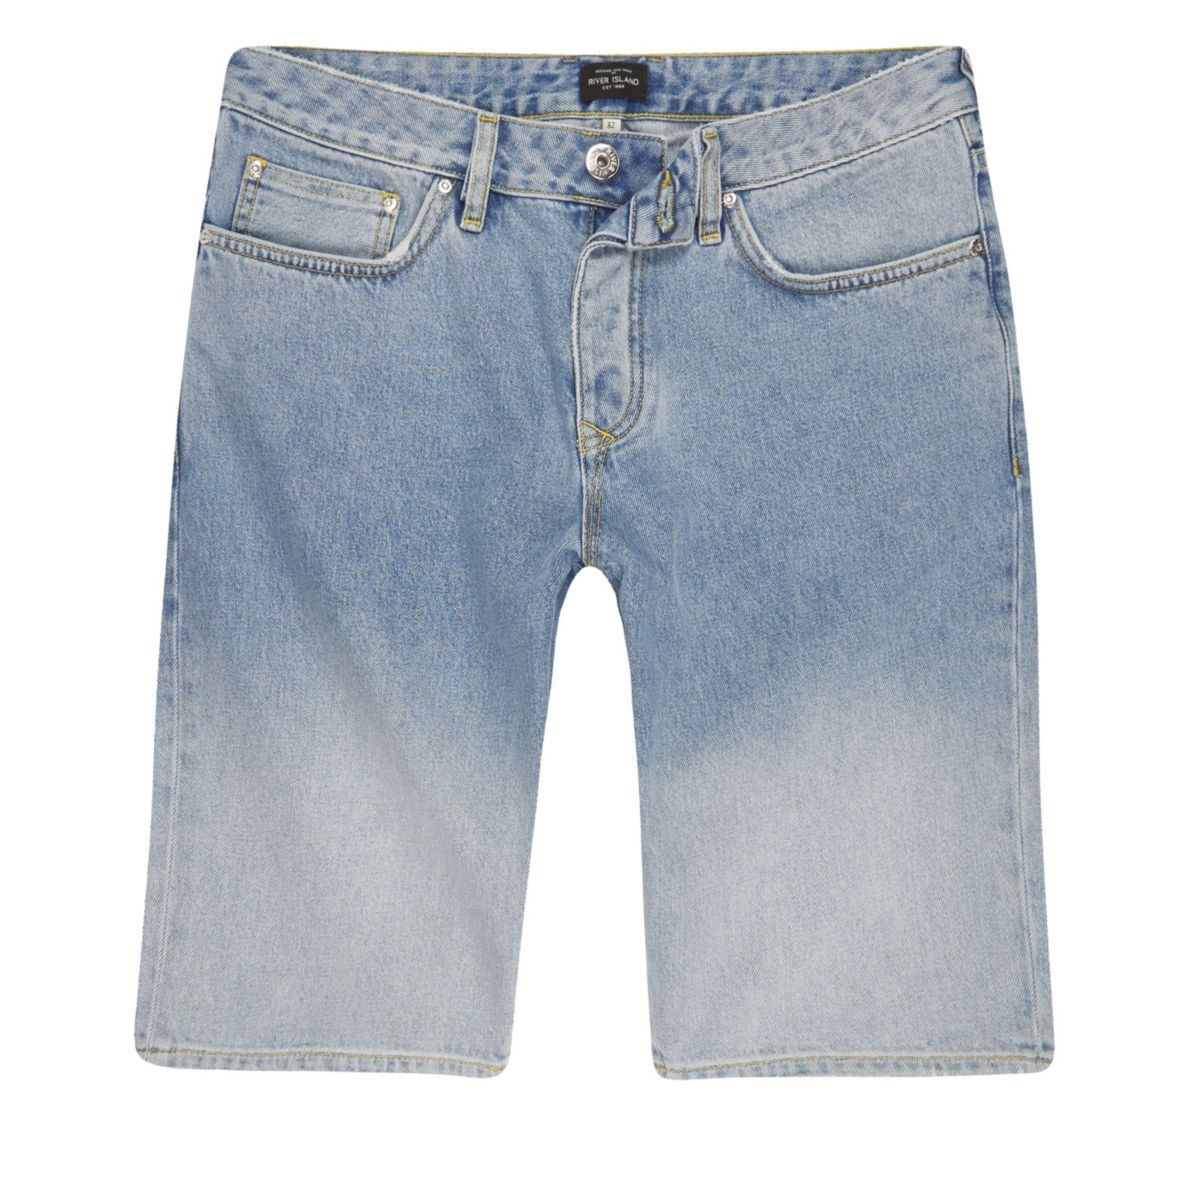 Light blue fade denim shorts